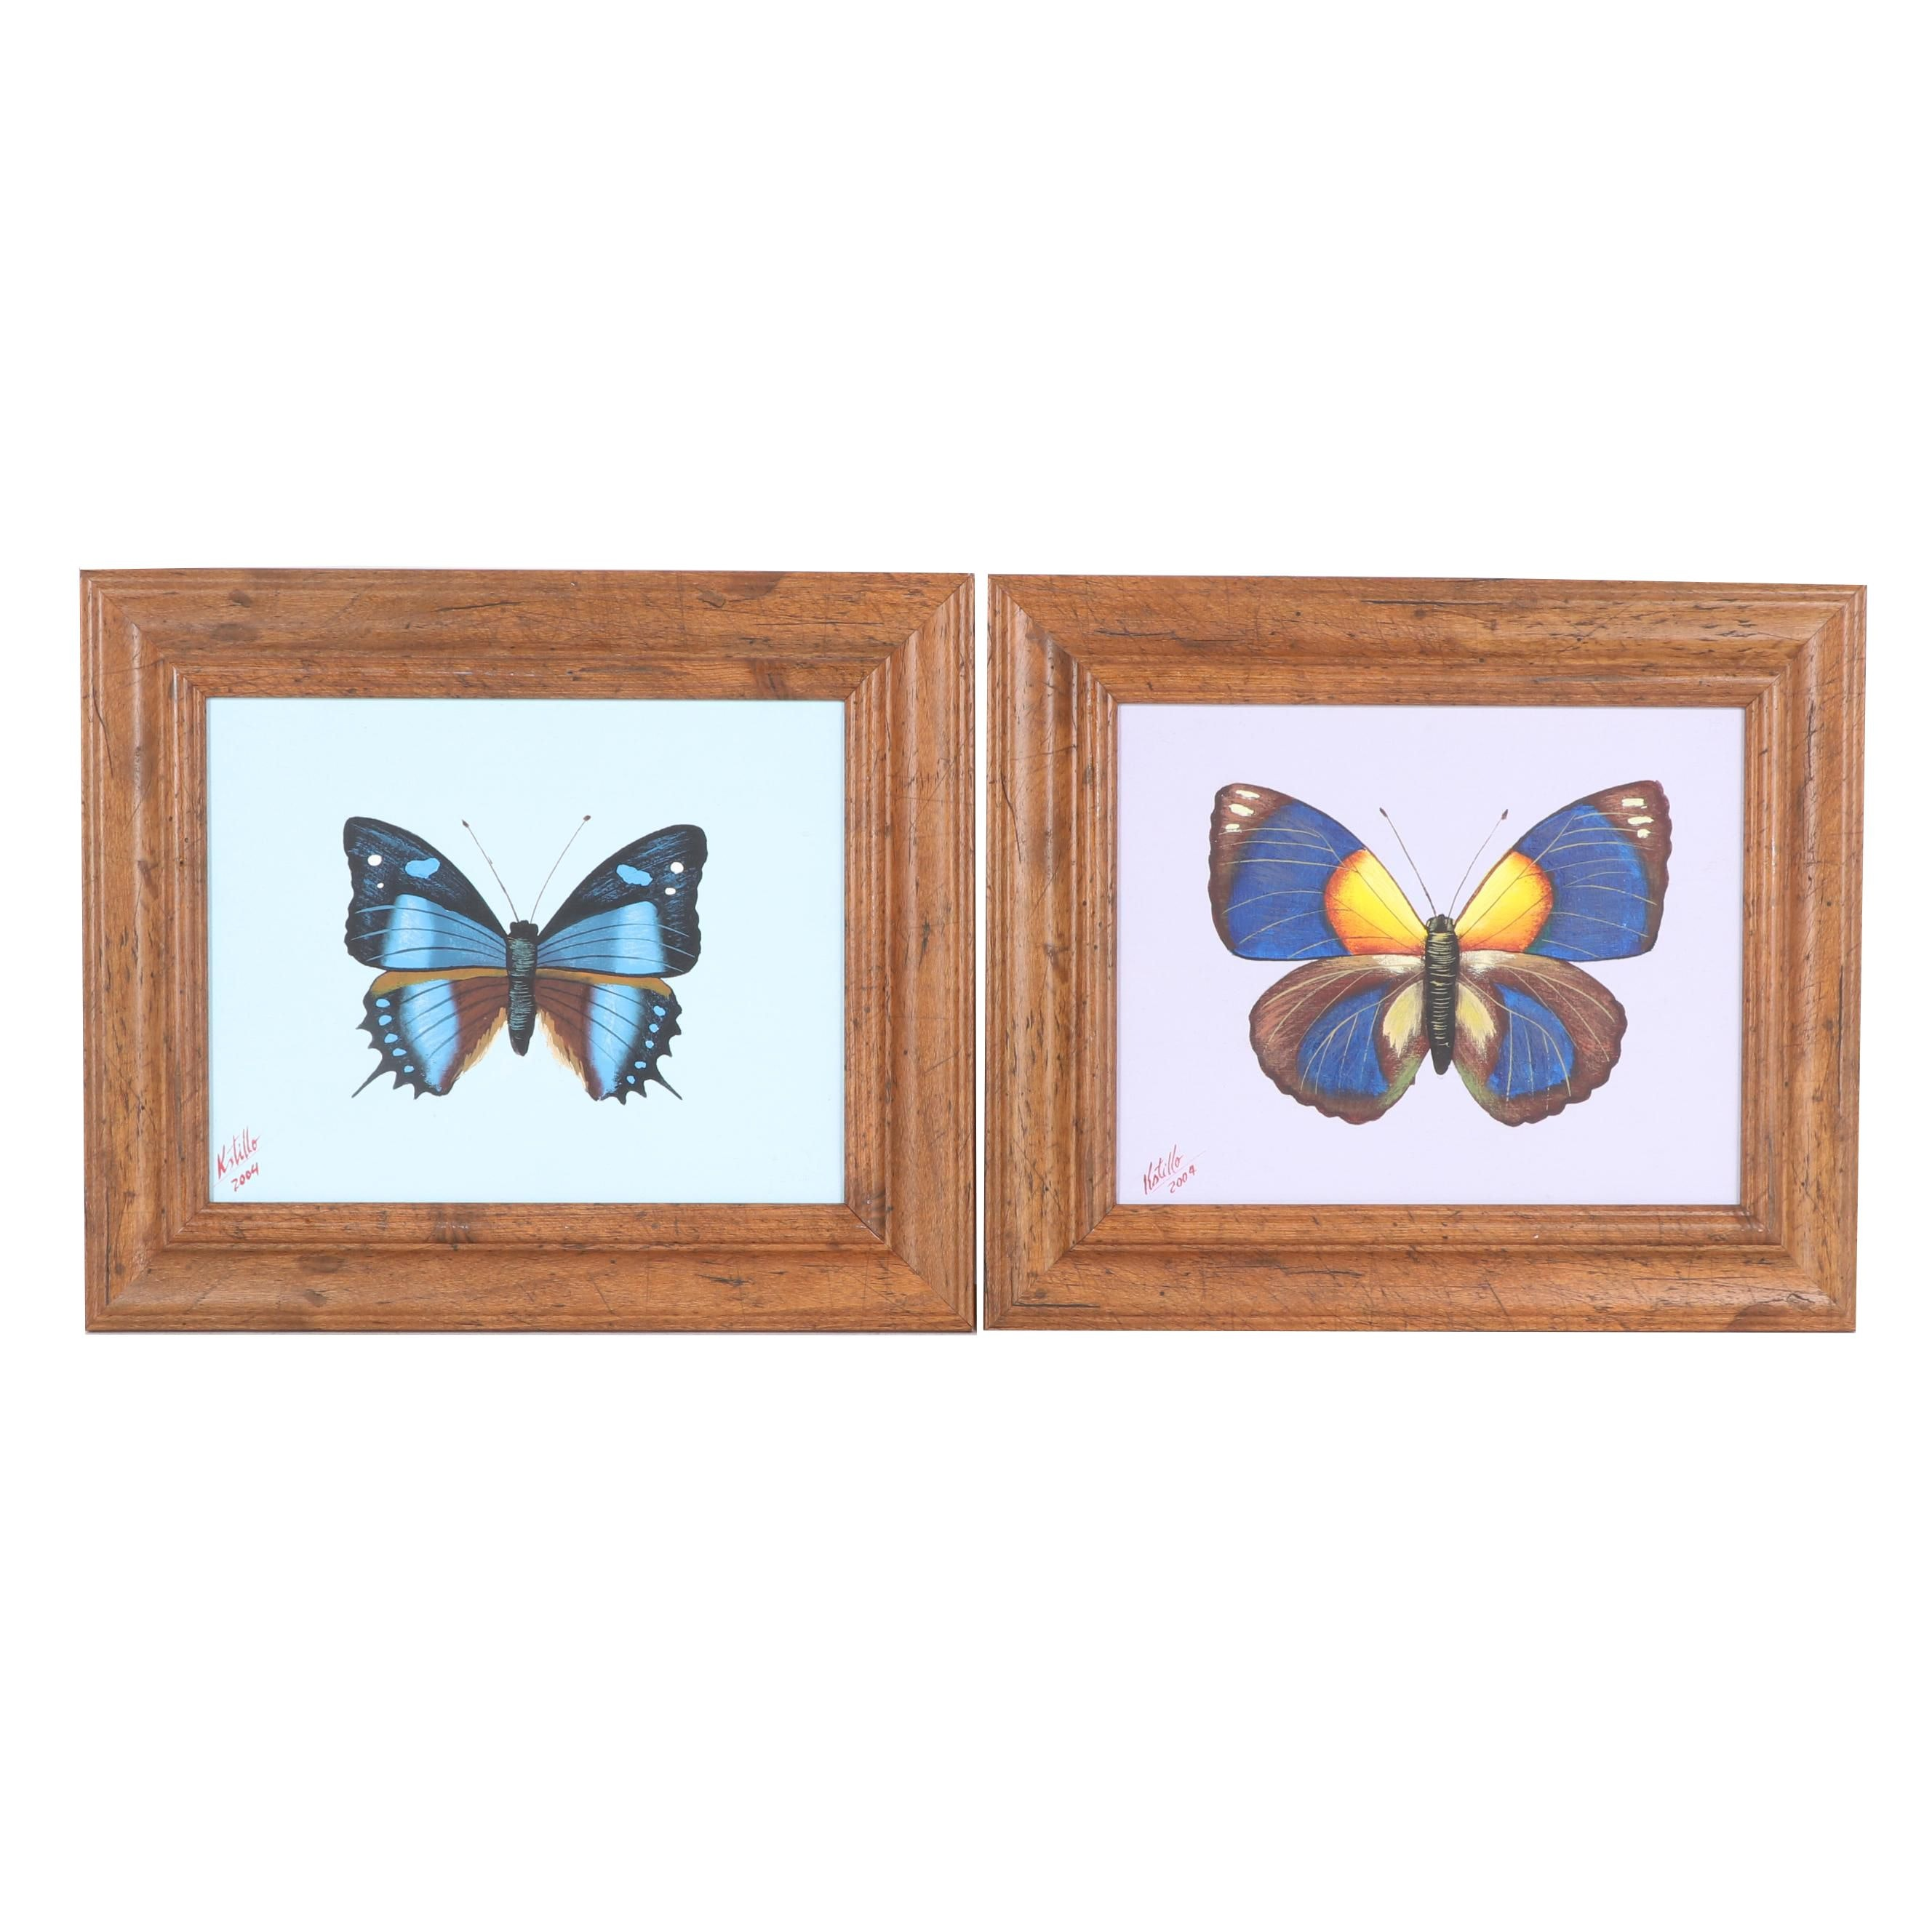 Kstillo Oil Paintings of Butterflies